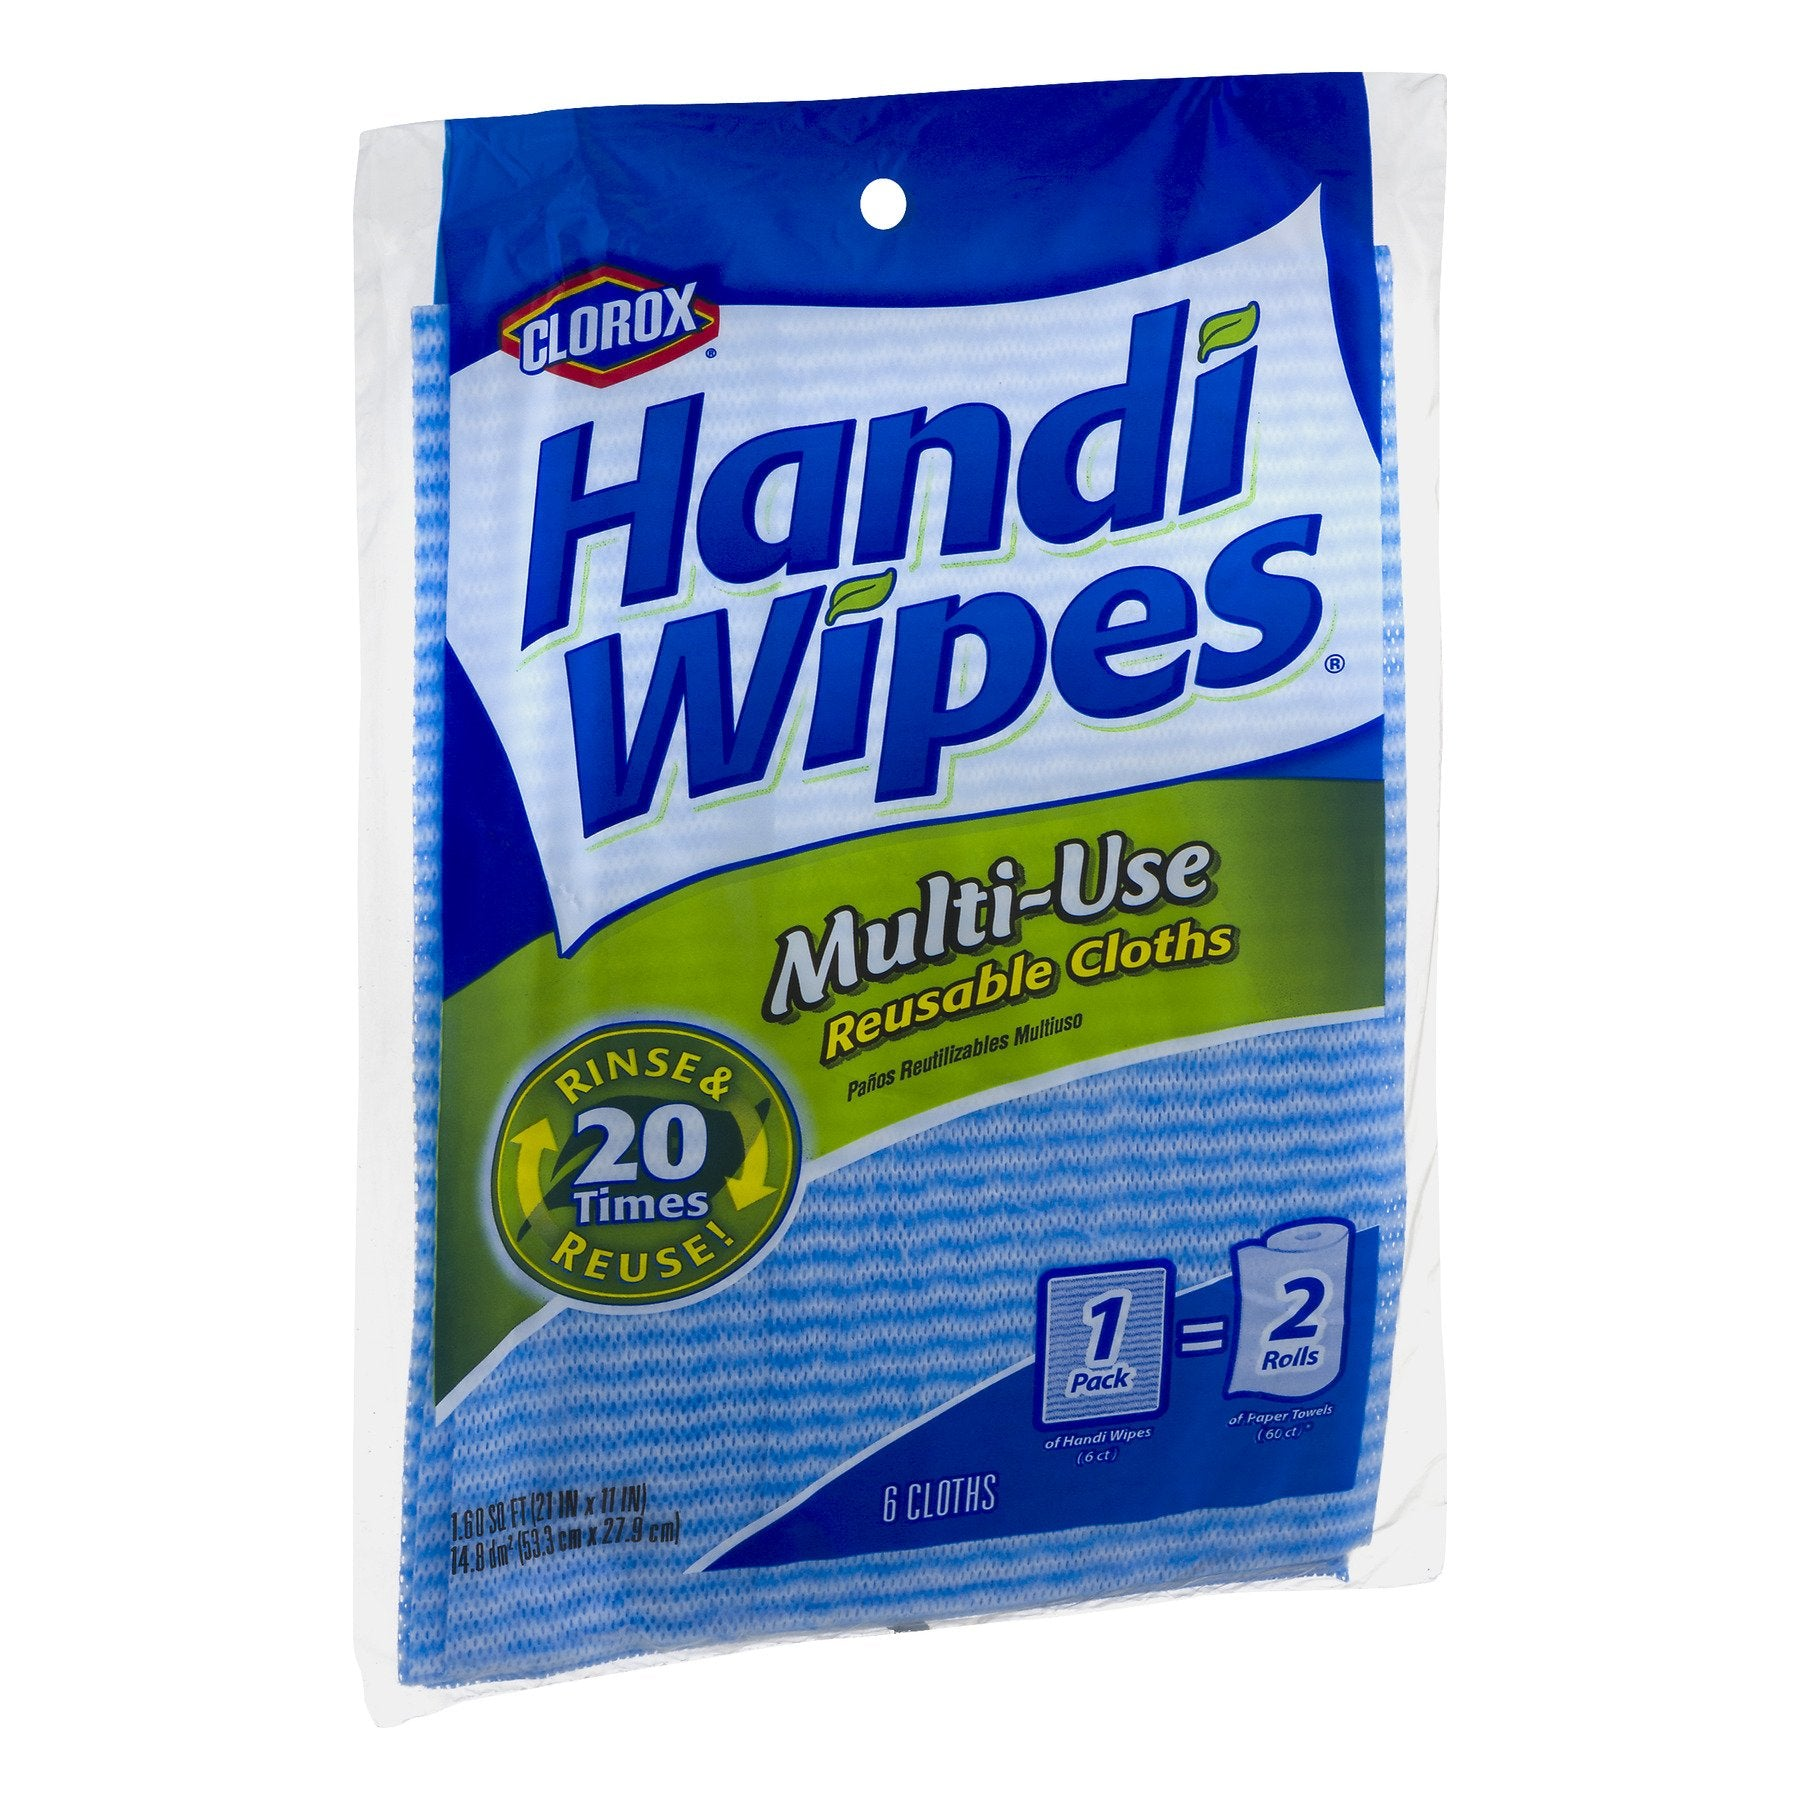 stl>Clorox Handi-Wipes